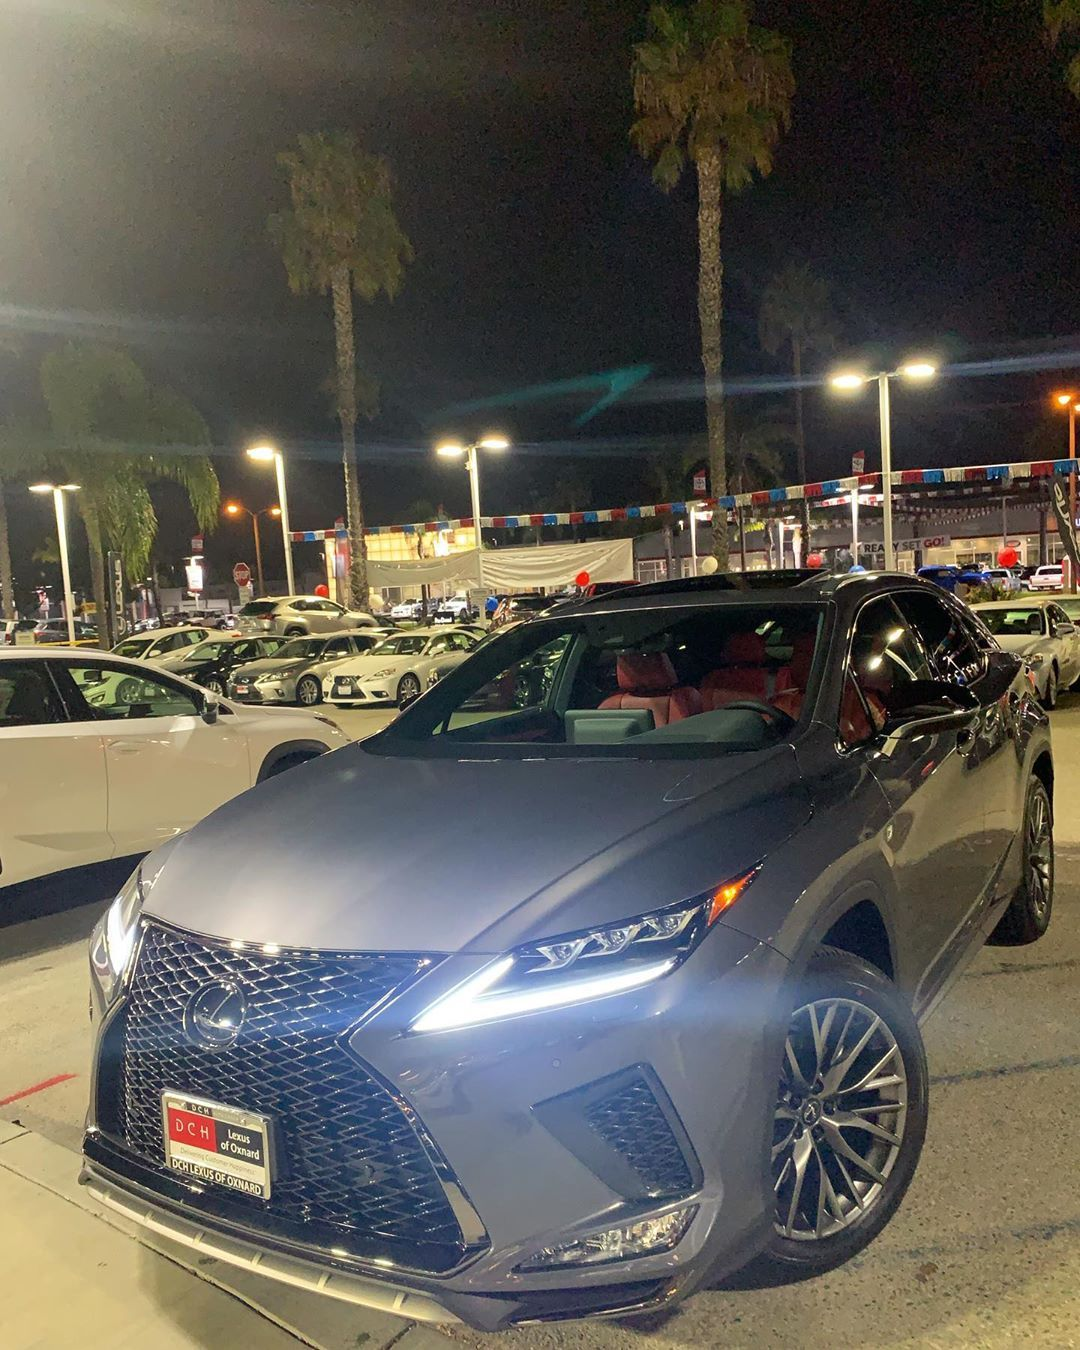 Welcome To The Lexus Family Veronica Congratulations On Your Stunning 2020 Lexus Rx350 Fsport With The Red Interio Lexus Lexus Rx 350 Dream Cars